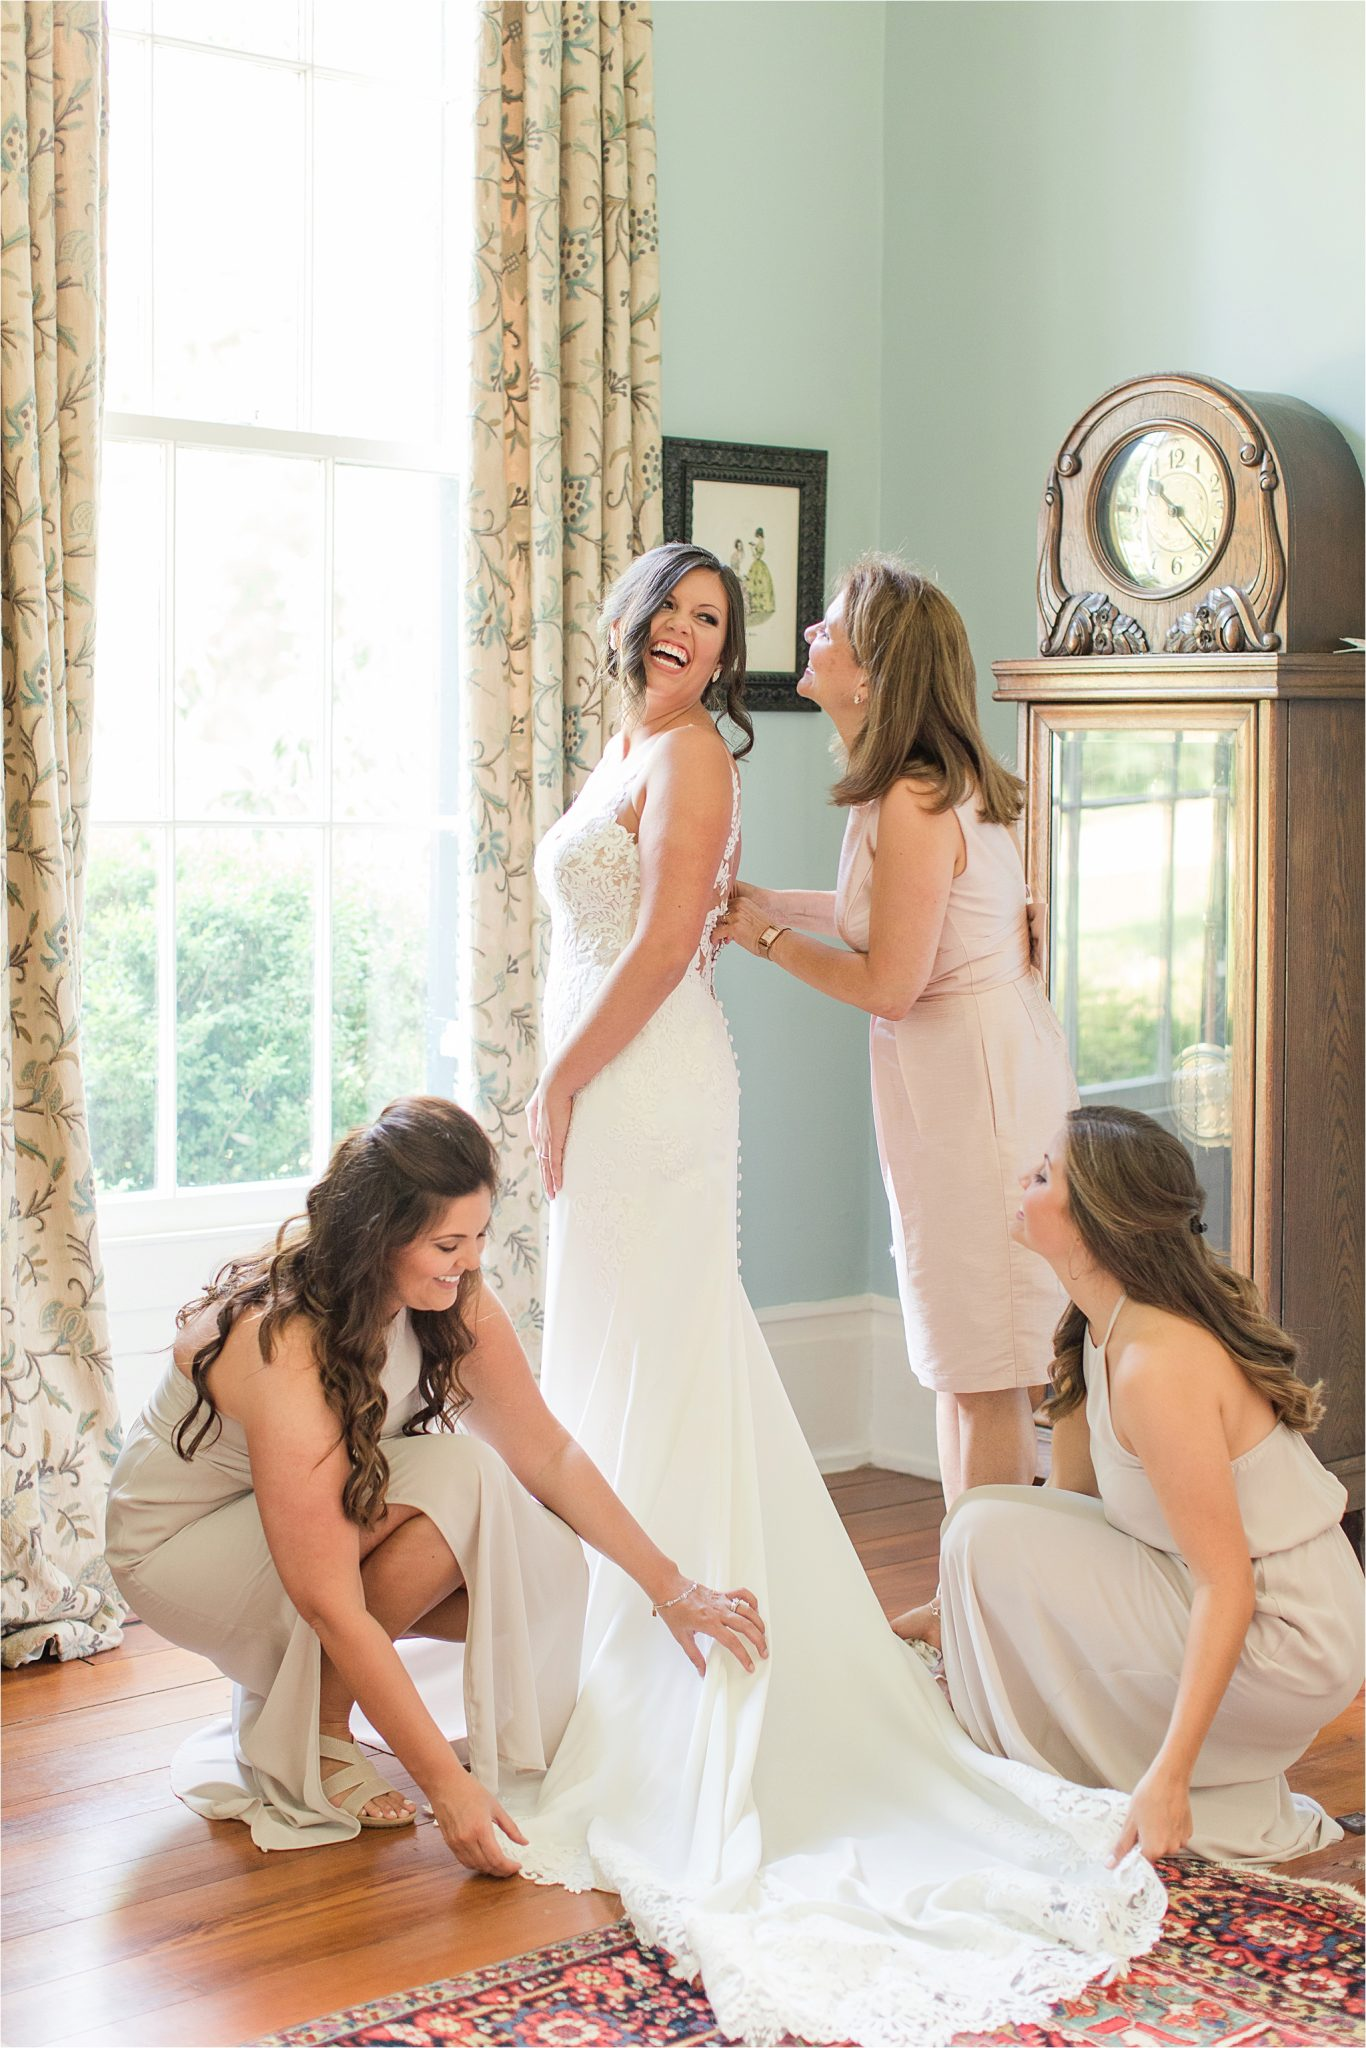 Hedge Farm Wedding | Alabama Wedding Photographer | Barn Wedding | Brides and bridesmaids